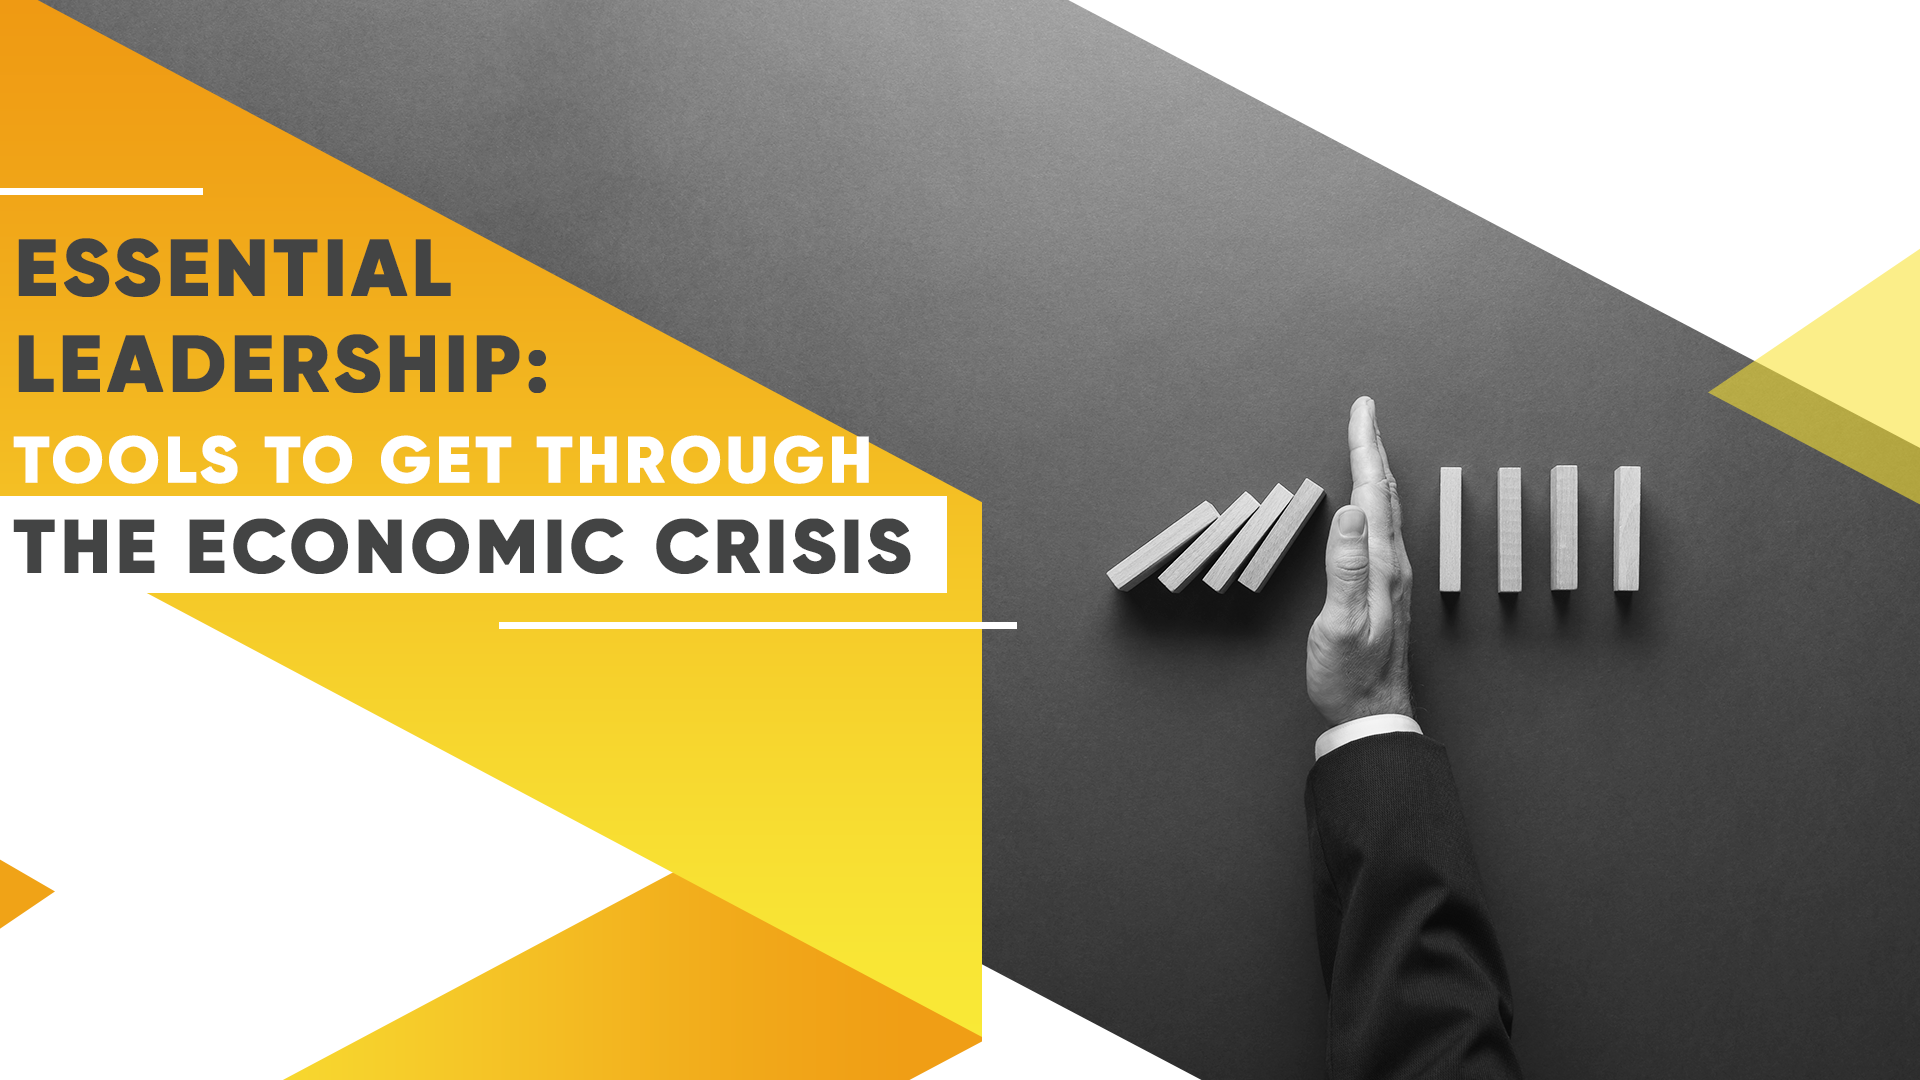 Essential Leadership: Tools to Get Through the Economic Crisis